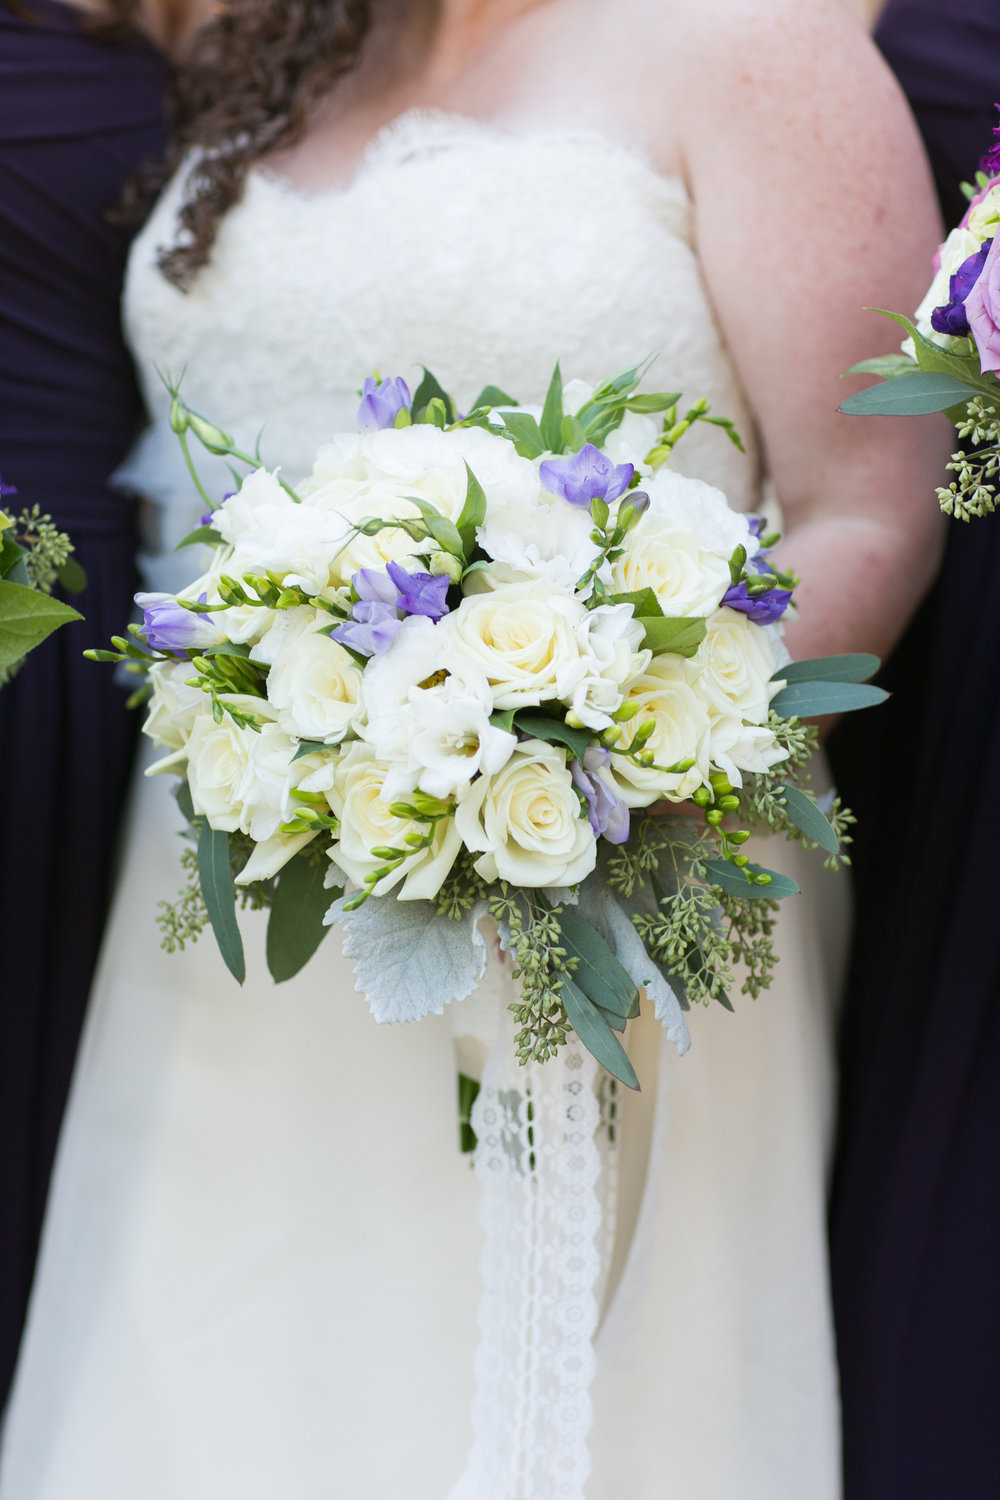 The bridal bouquet and all it's glory! Lavender Freesia, white Freesia, white roses, white Lisianthus, seeded Eucalyptus, gray Dusty Miller leaves and satin and lace ribbons.